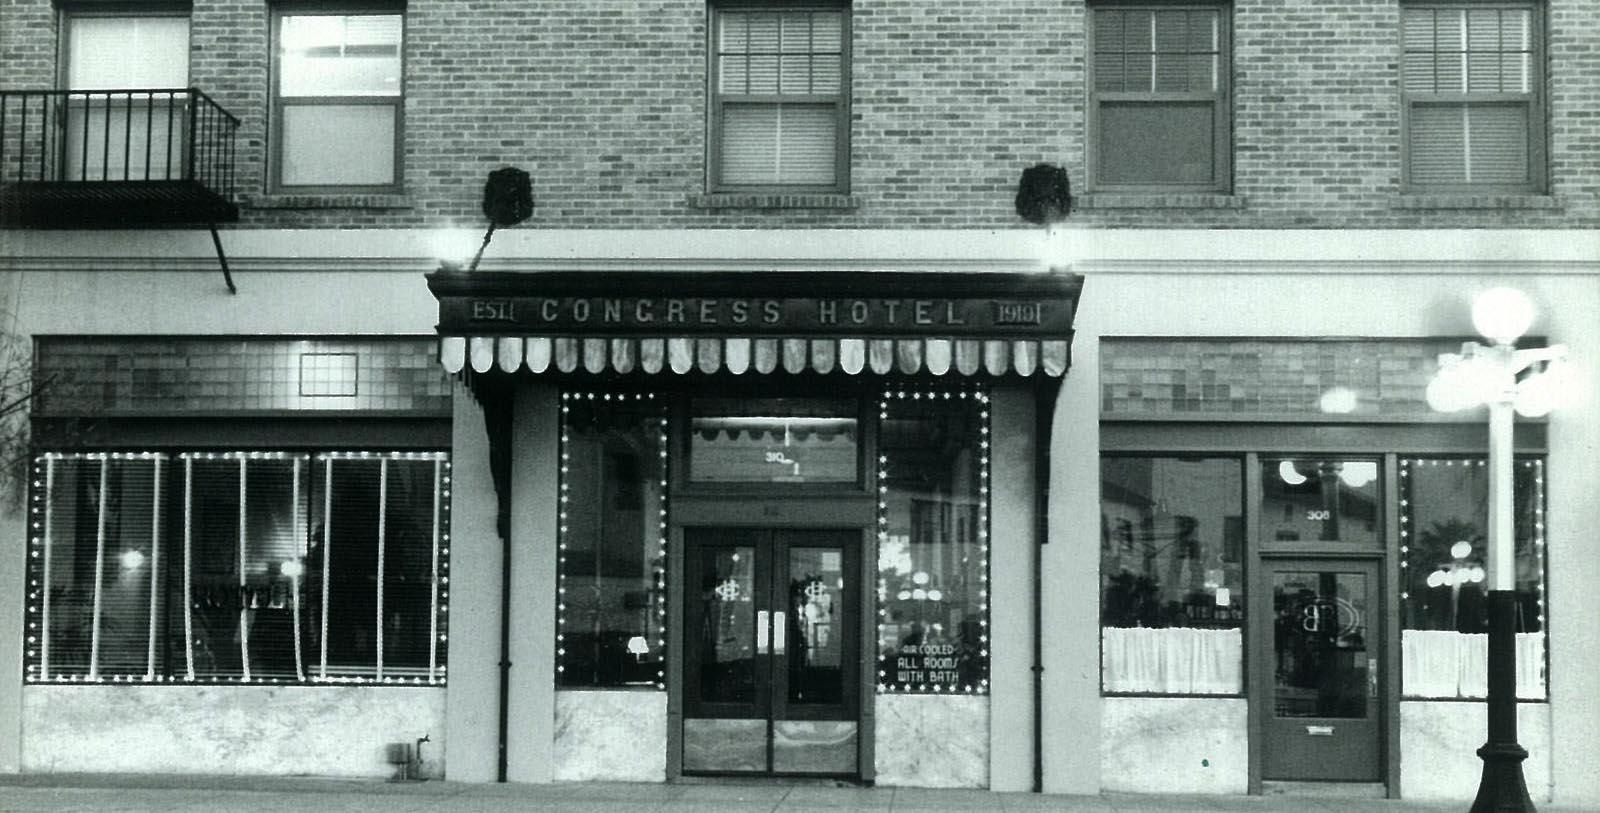 Historic Image of Entrance The Hotel Congress, 1919, Member of Historic Hotels of America, in Tucson, Arizona, Discover